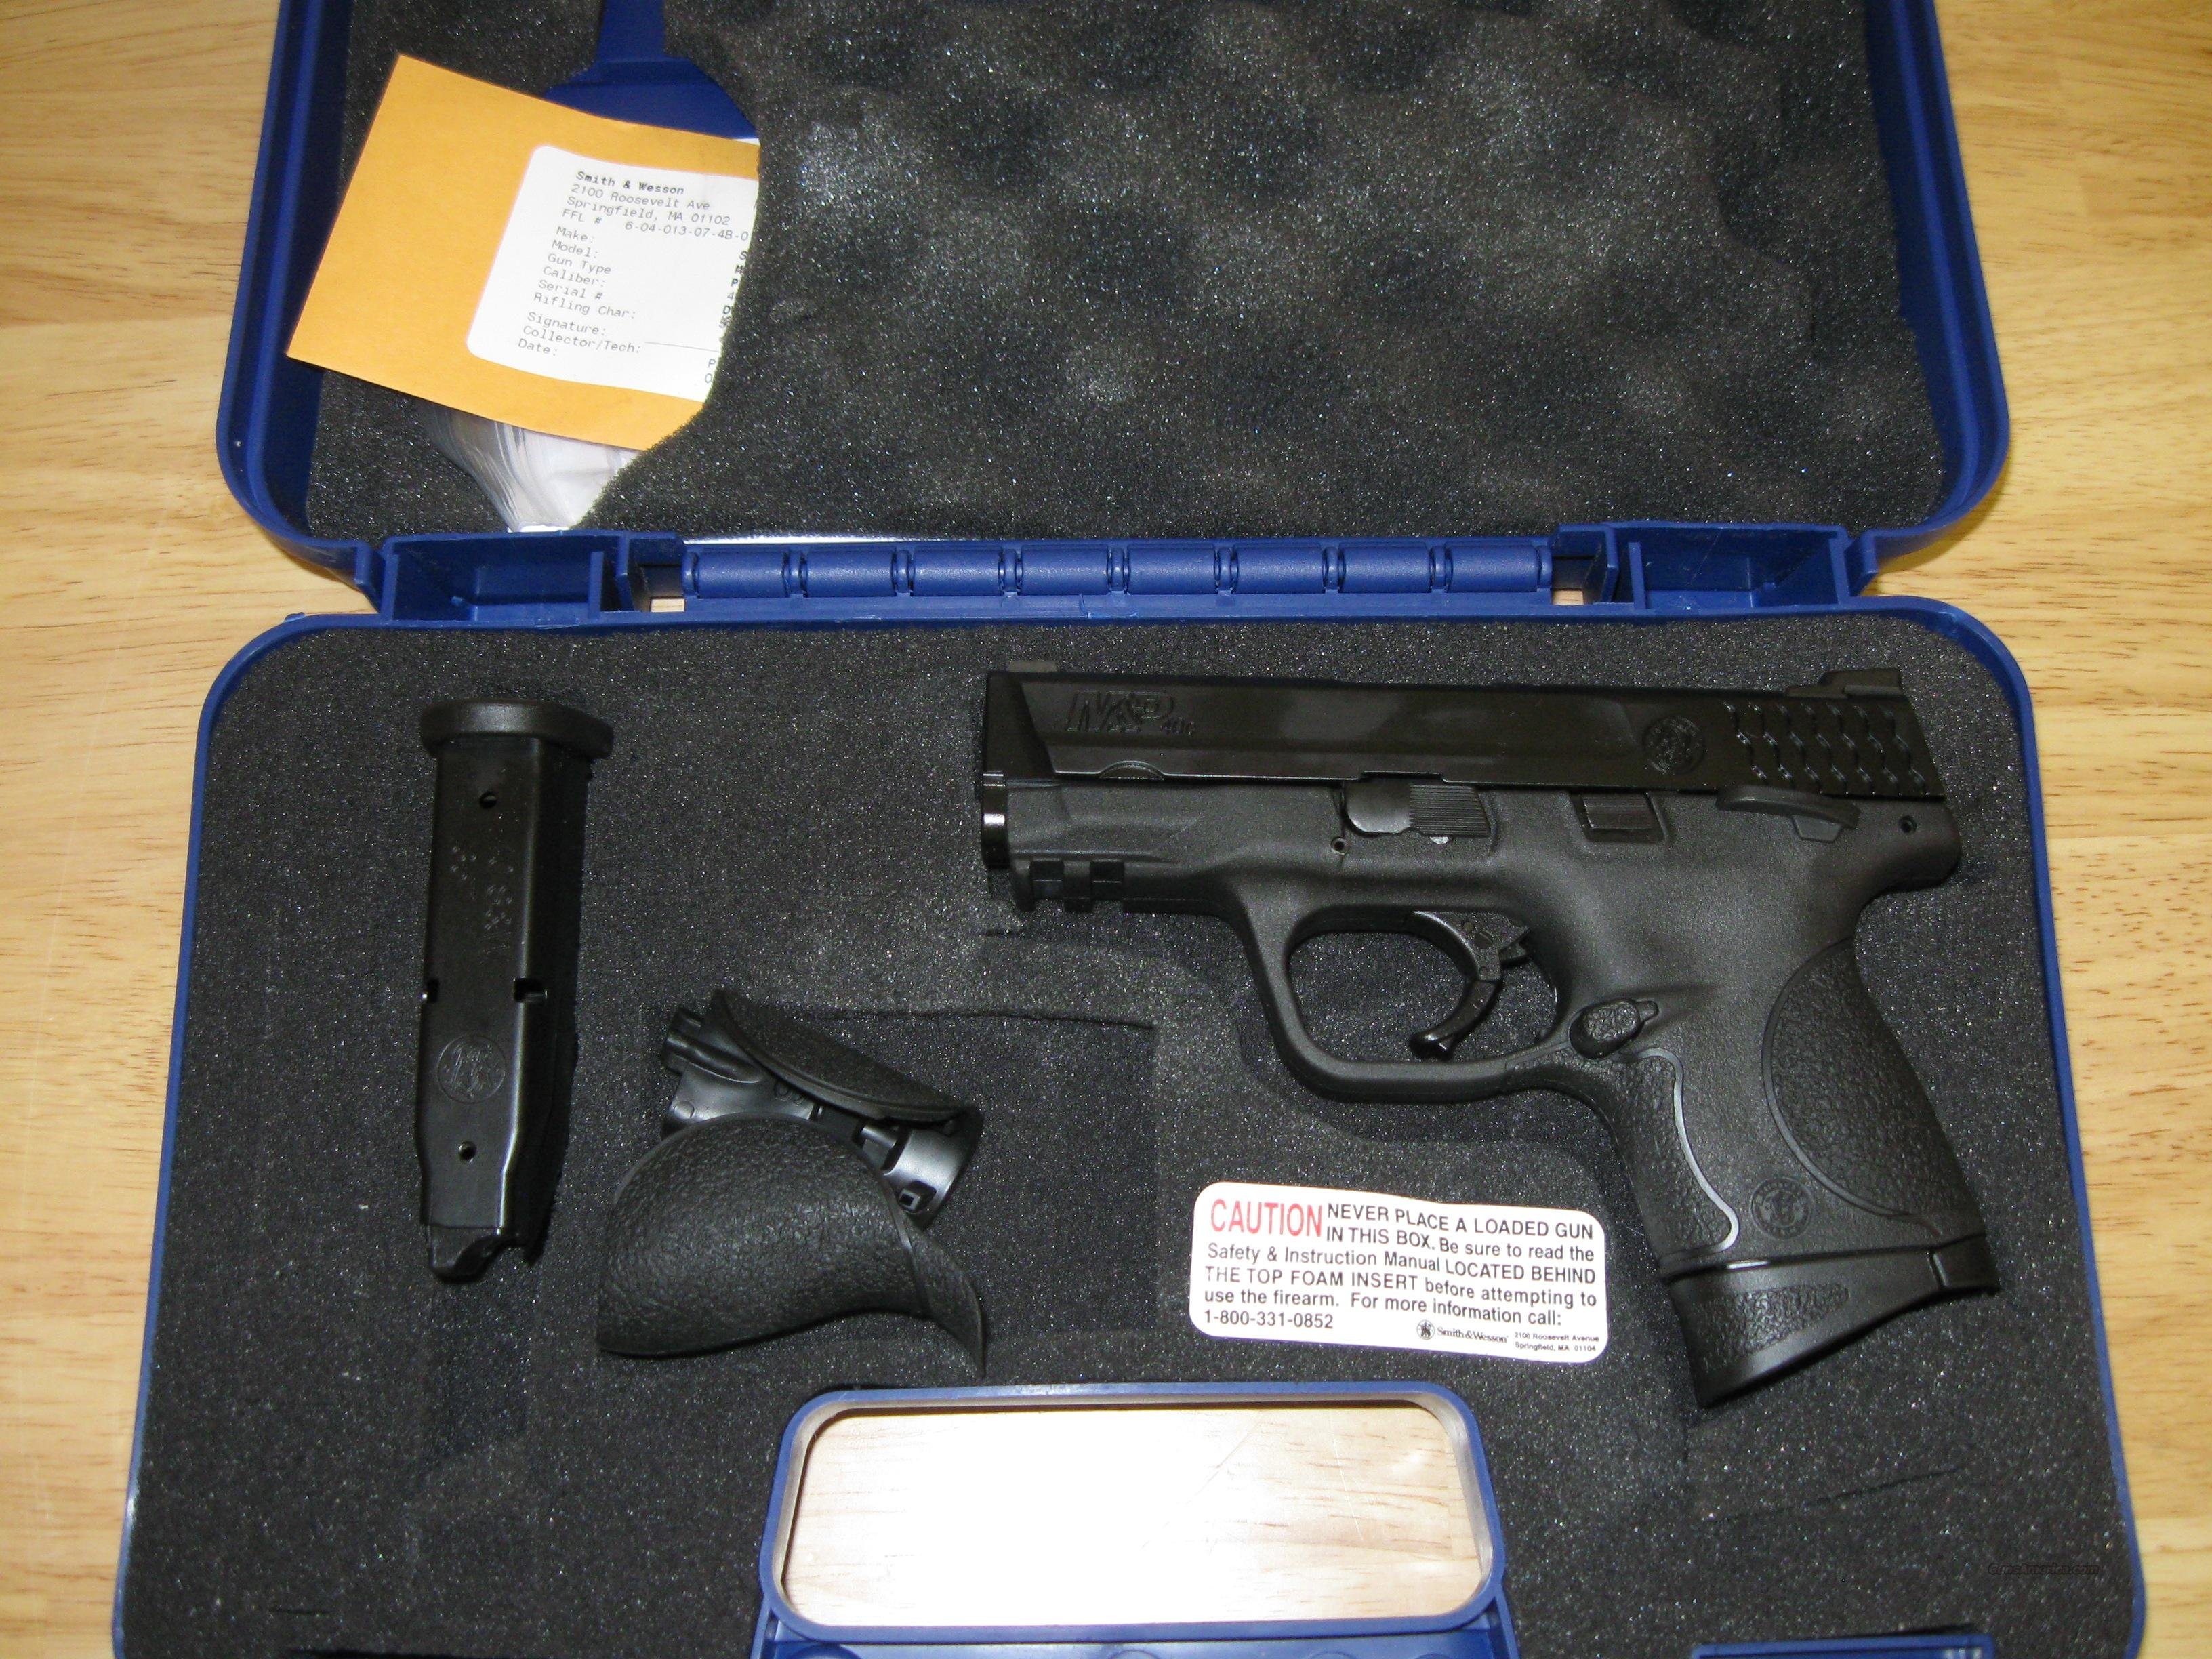 Smith & Wesson M&P 40C Compact Semi-Auto Pistol 106303, 40 S&W, 3.5 in, Black Synthetic Grip, Black Finish, 10 Rd, Ambi Safety  Guns > Pistols > Smith & Wesson Pistols - Autos > Polymer Frame